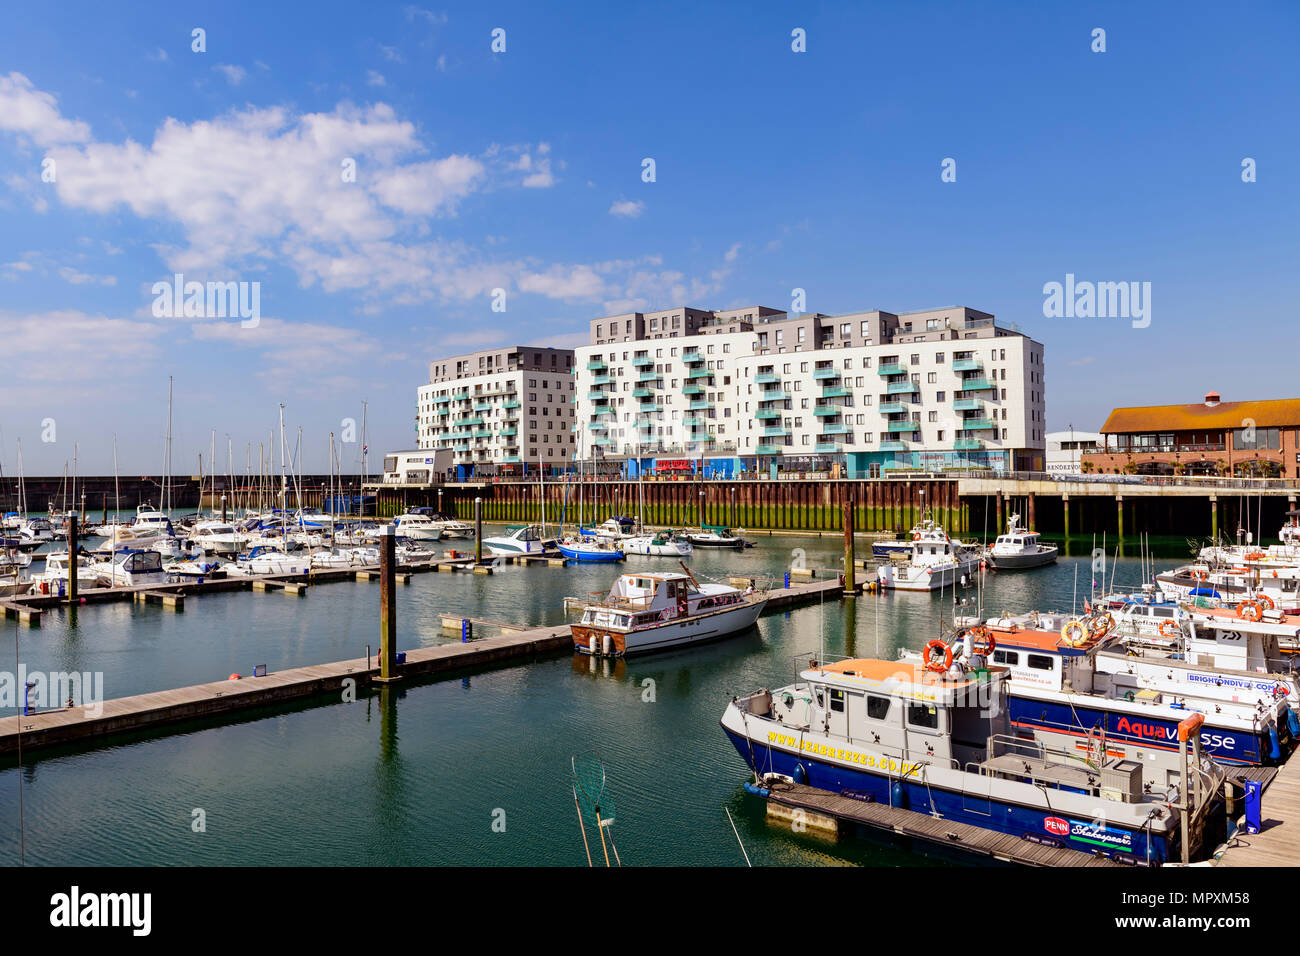 moored yachts and apartments, Brighton marina, Sussex UK - Stock Image